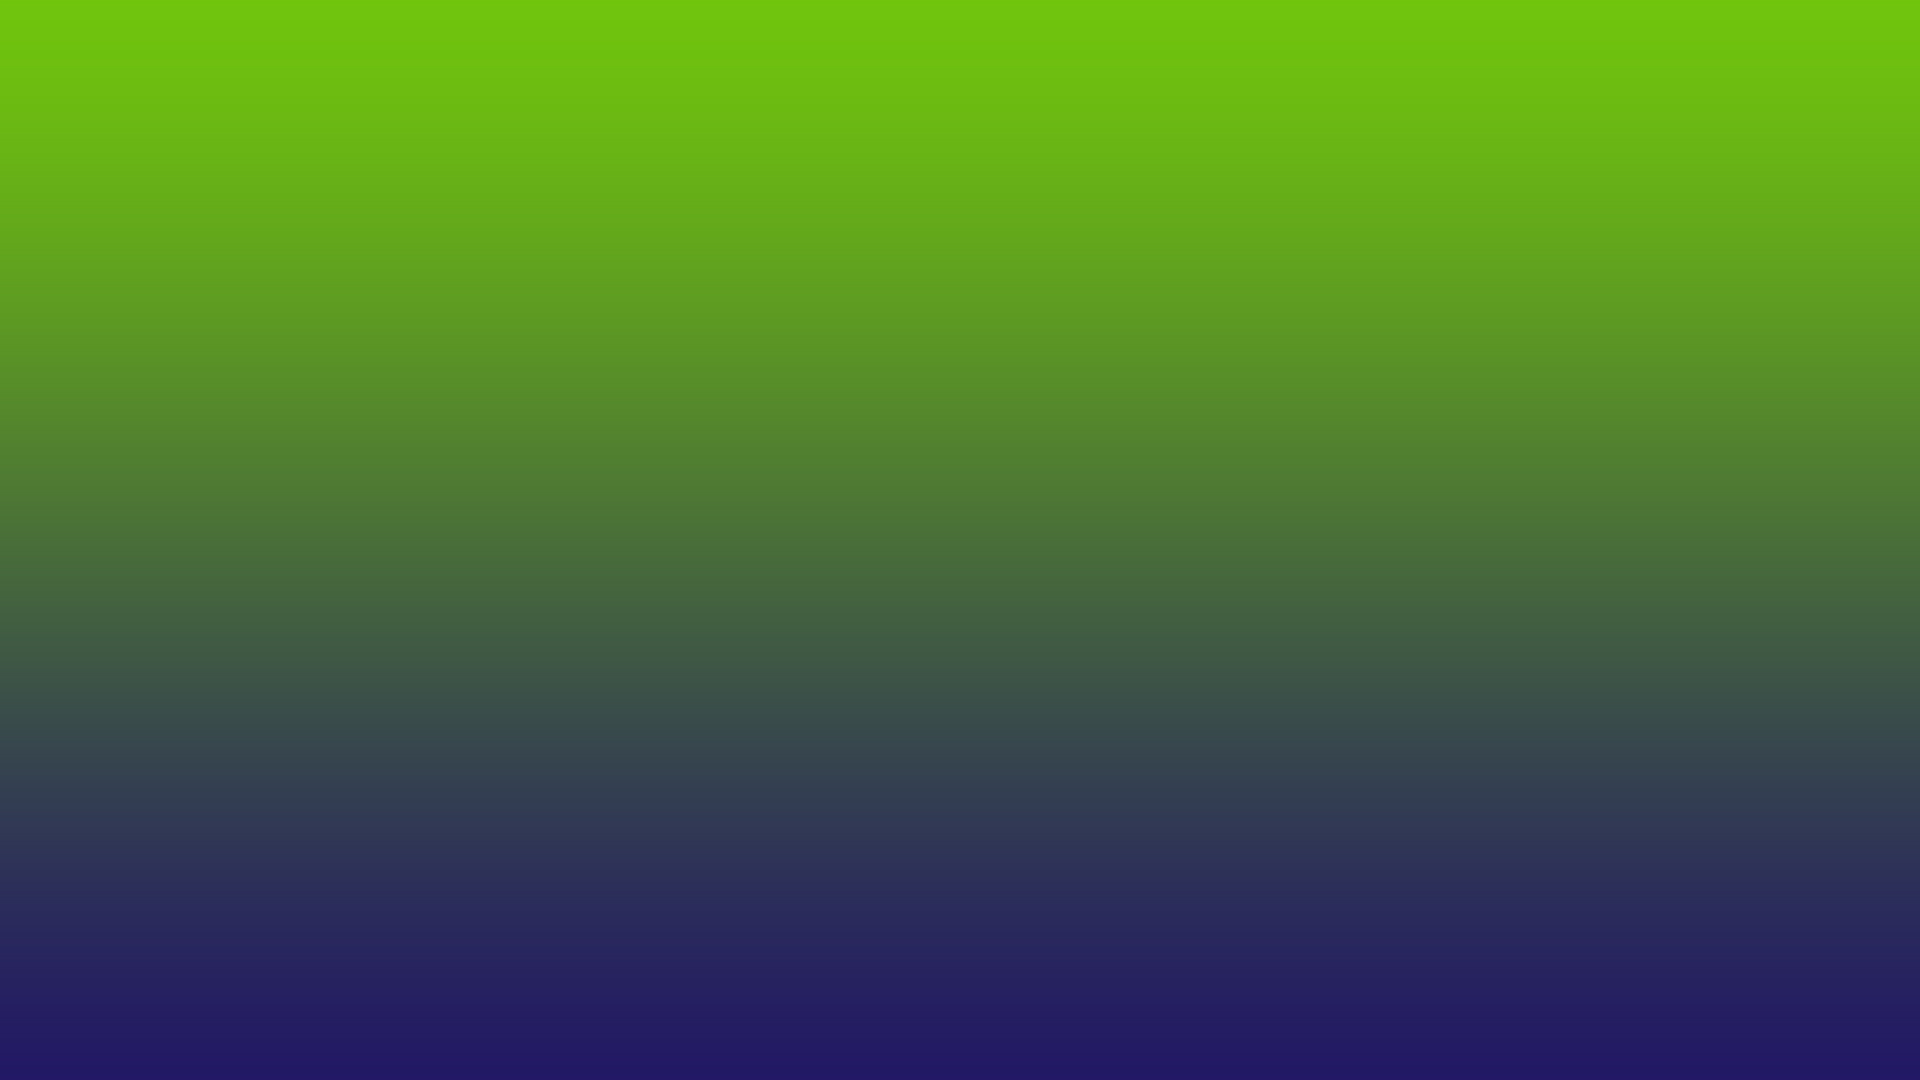 green and blue gradient wallpaper 63438